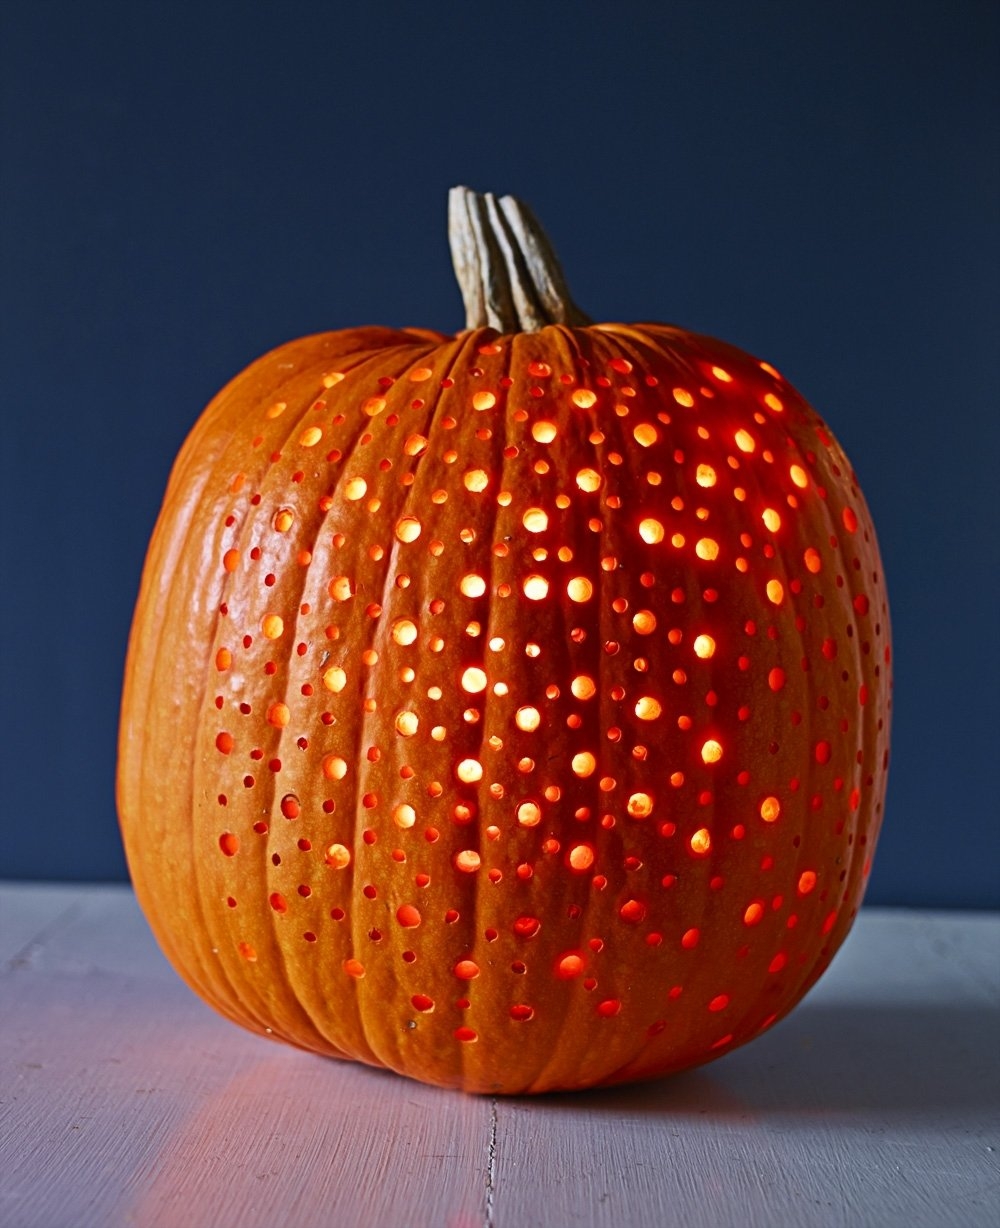 10 Lovely Cool Pumpkin Ideas Without Carving 60 pumpkin decorating ideas and designs for halloween pumpkin 1 2020